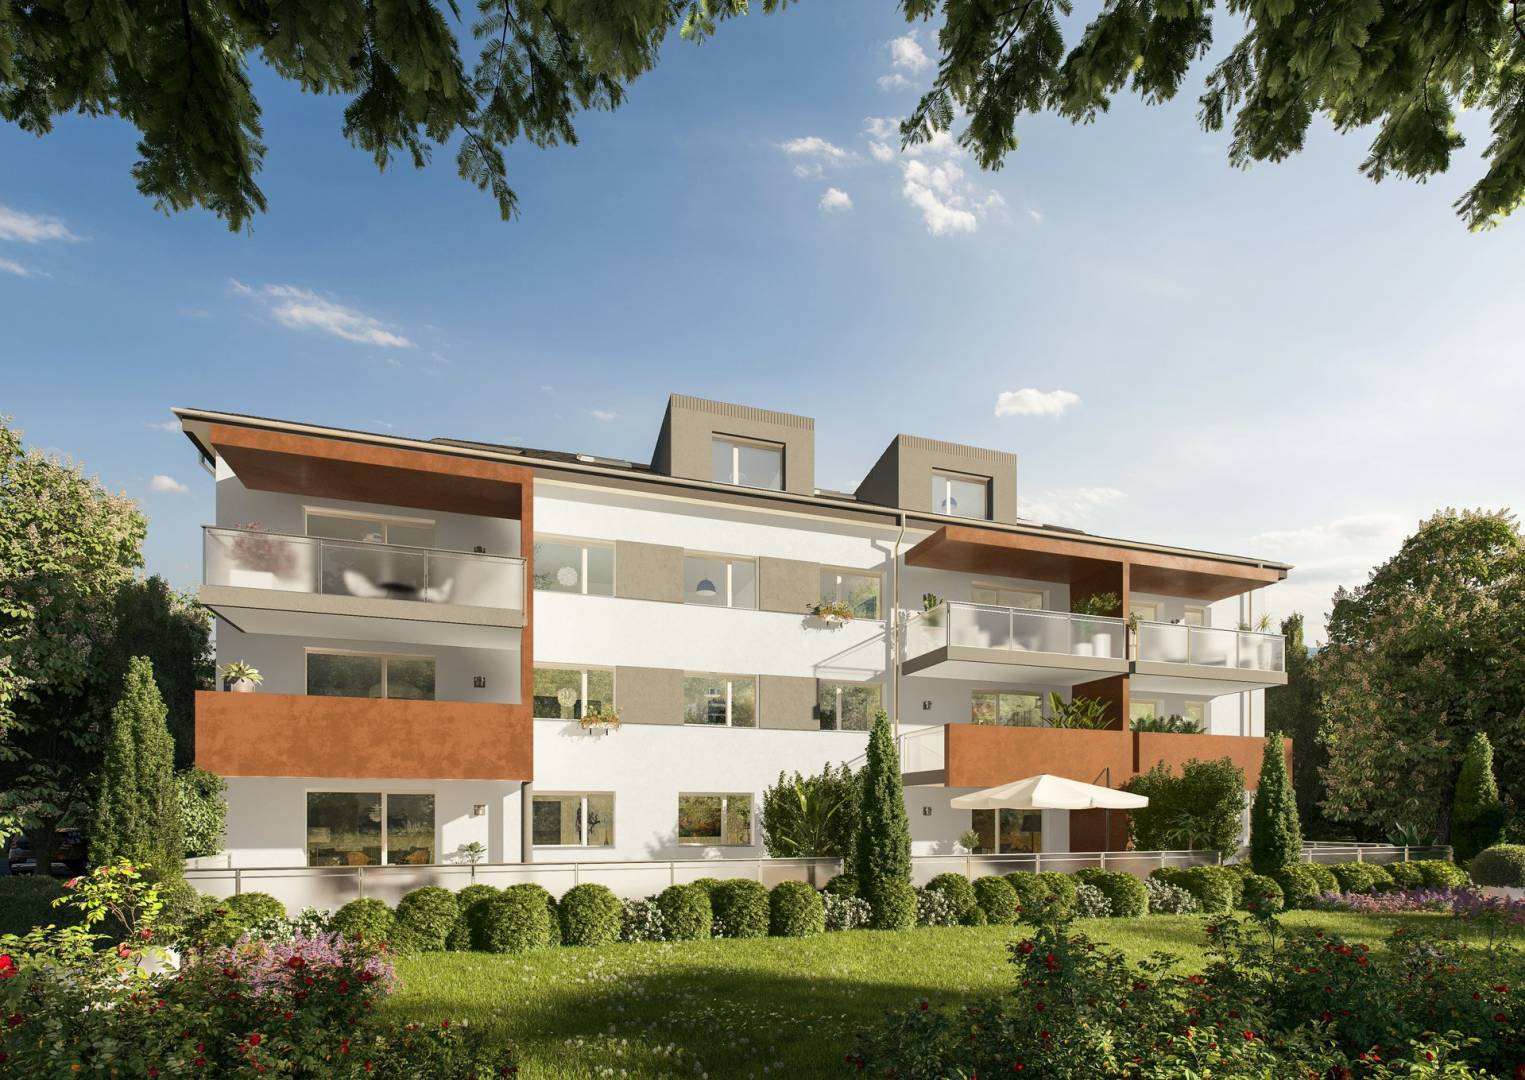 Development Apartment Rosenau